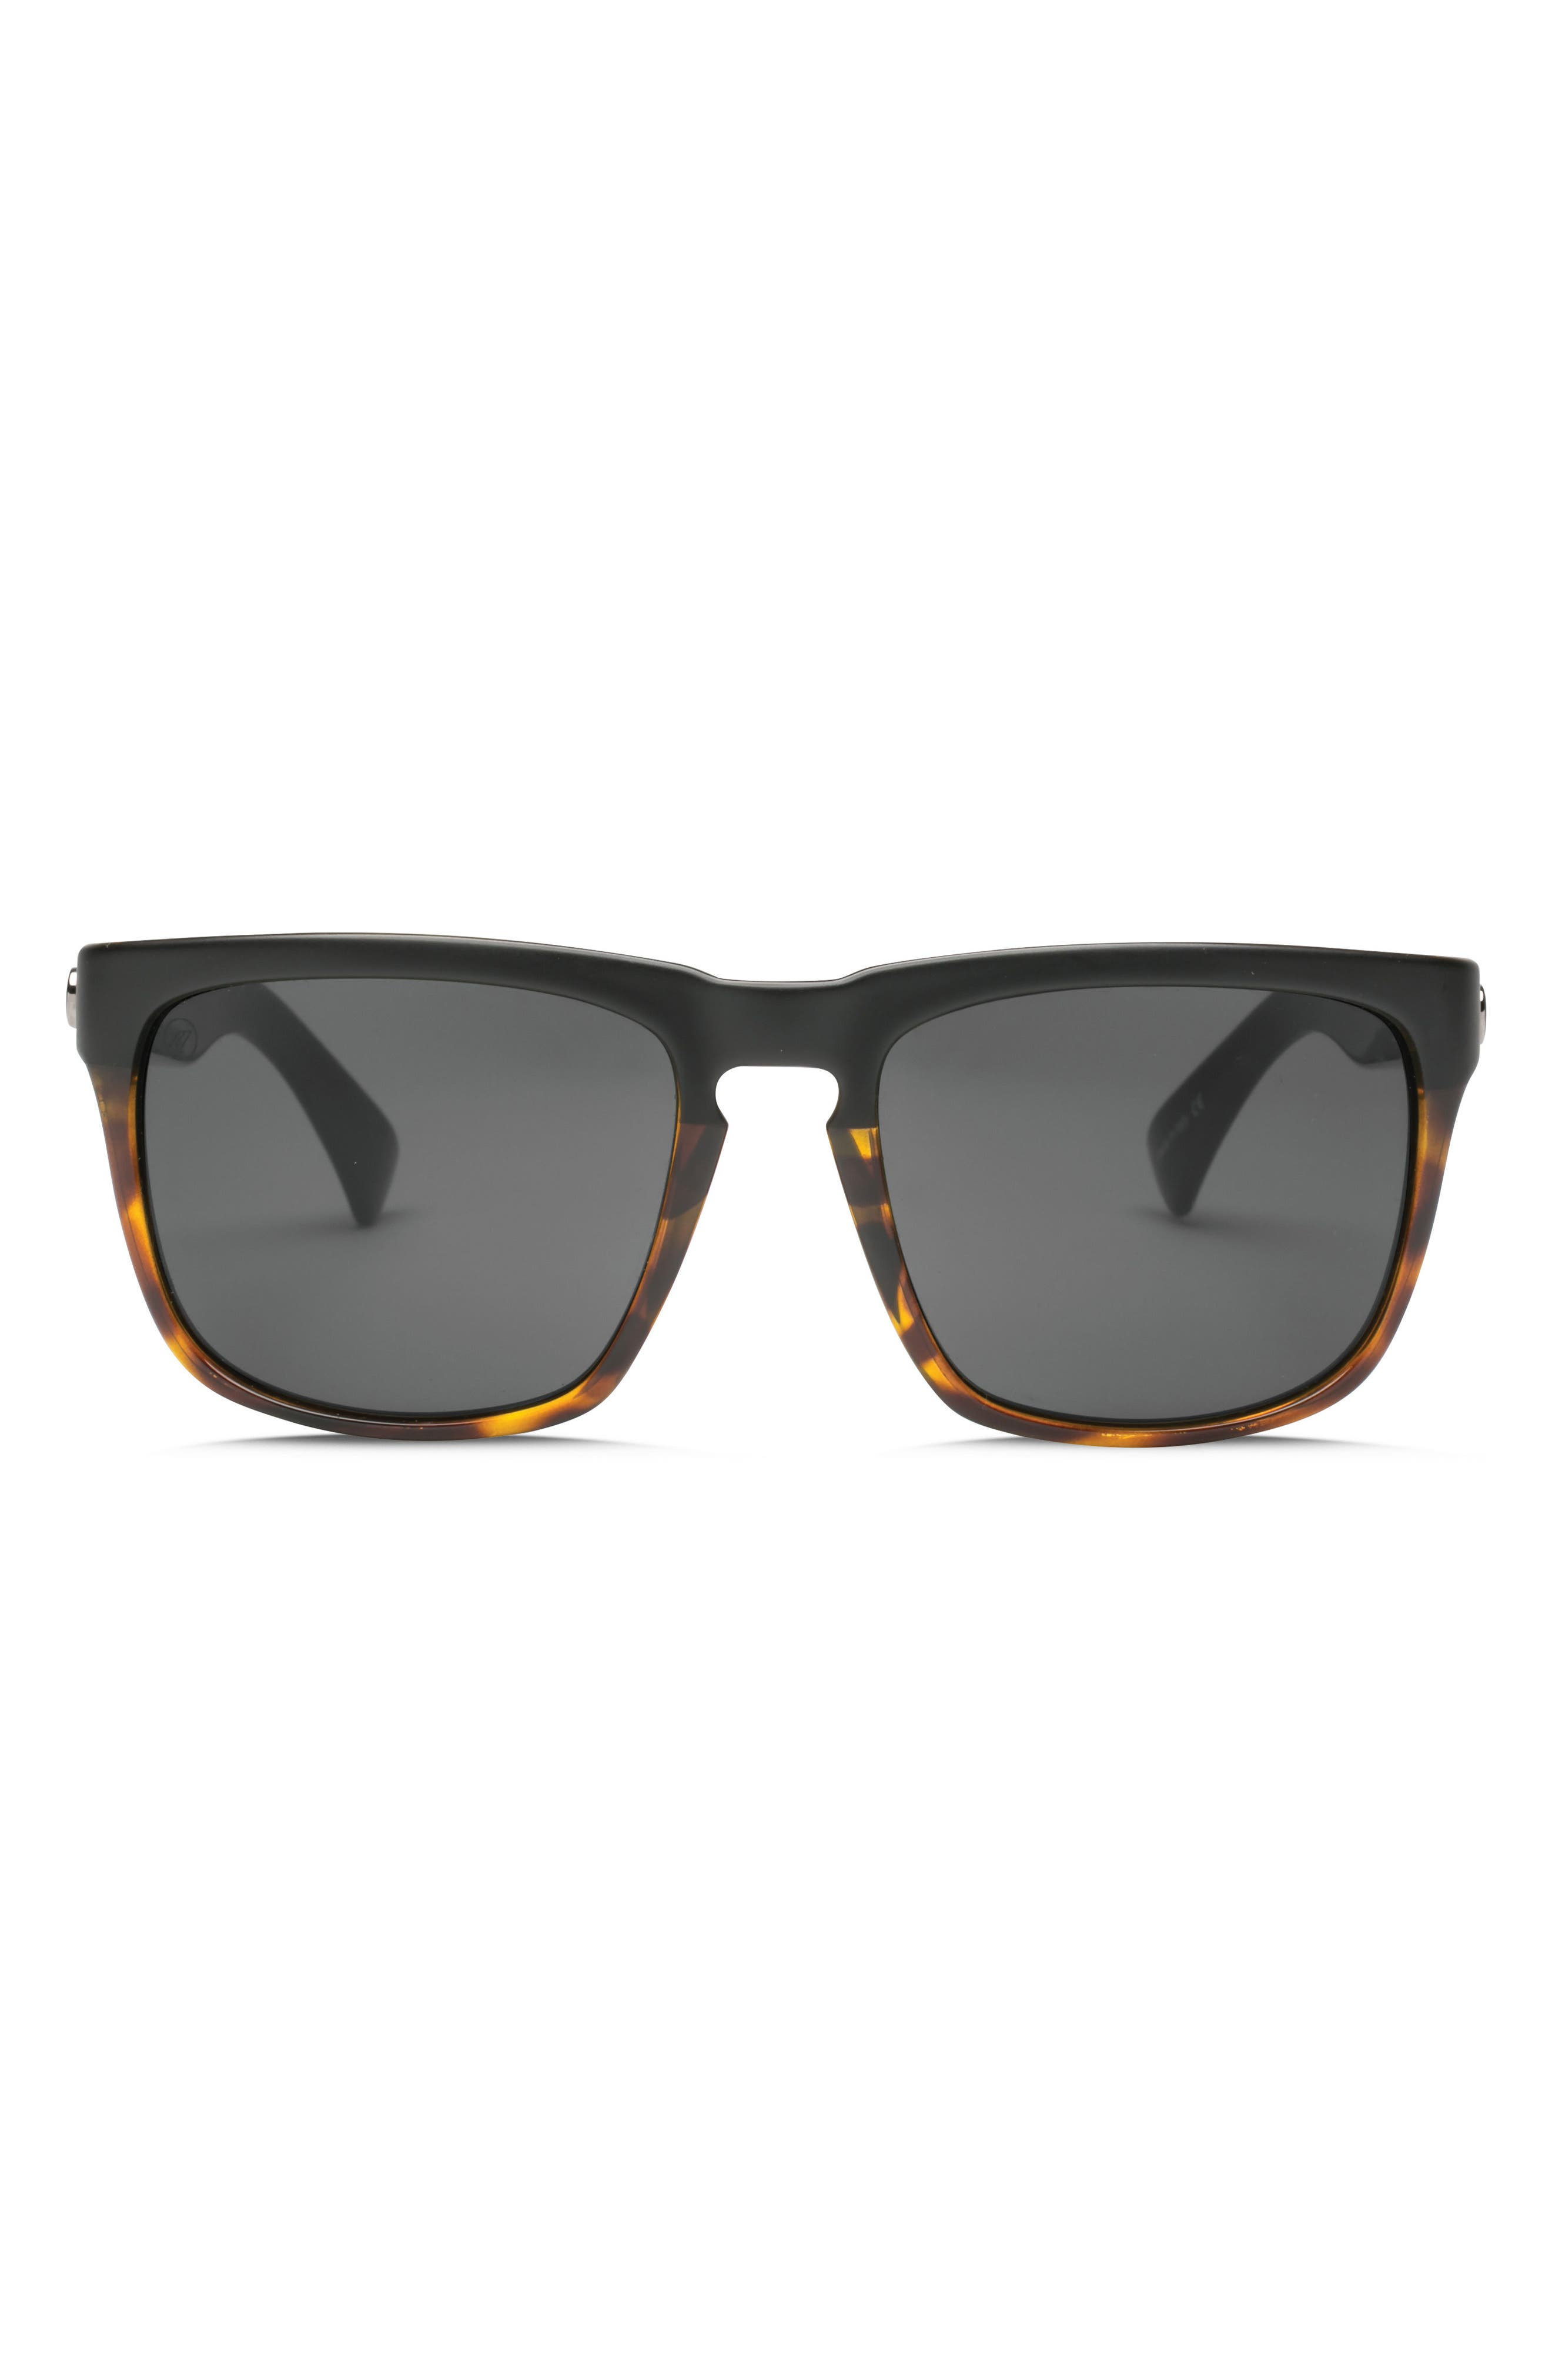 Knoxville XL 61mm Sunglasses,                             Main thumbnail 1, color,                             Darkside Tortoise/ Grey